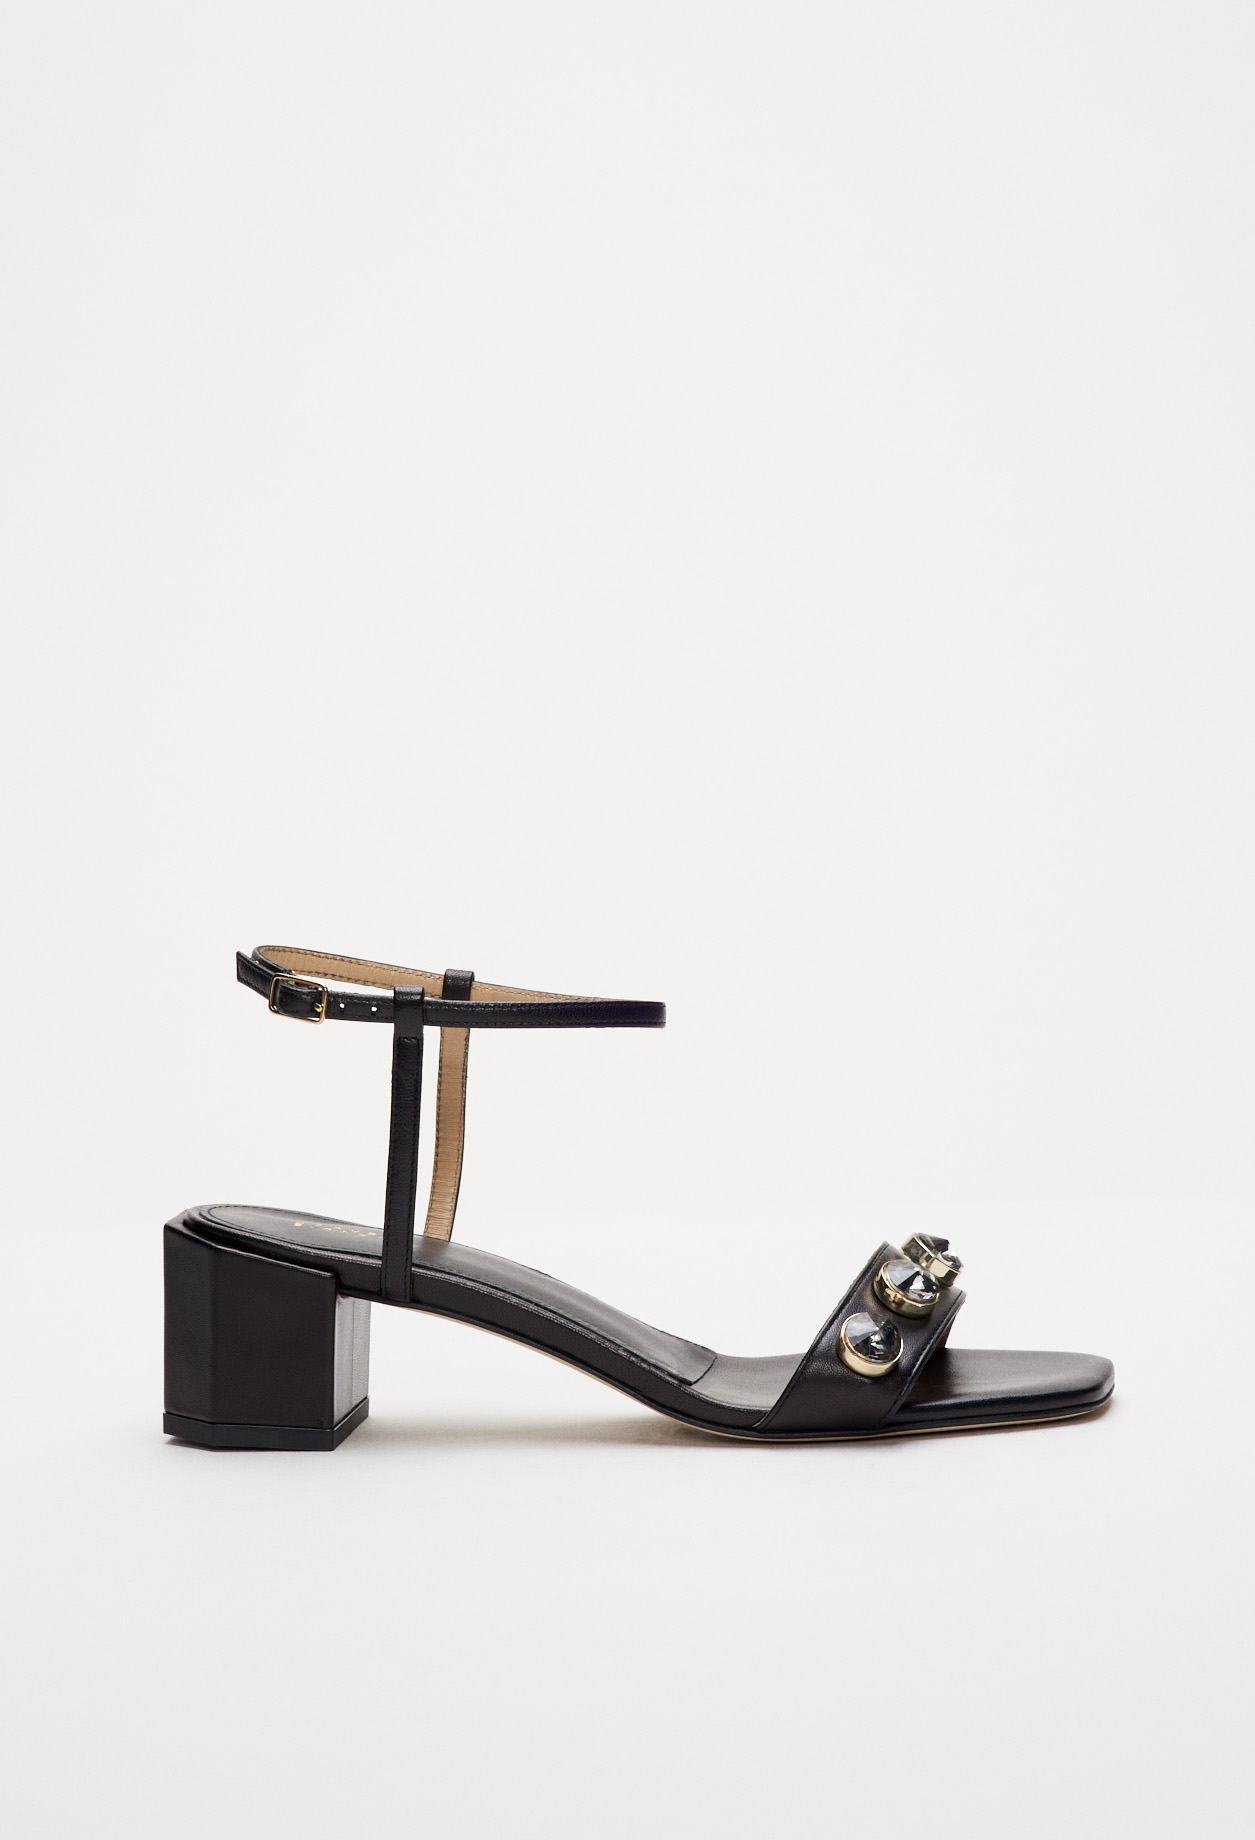 Summer sandals with square heels